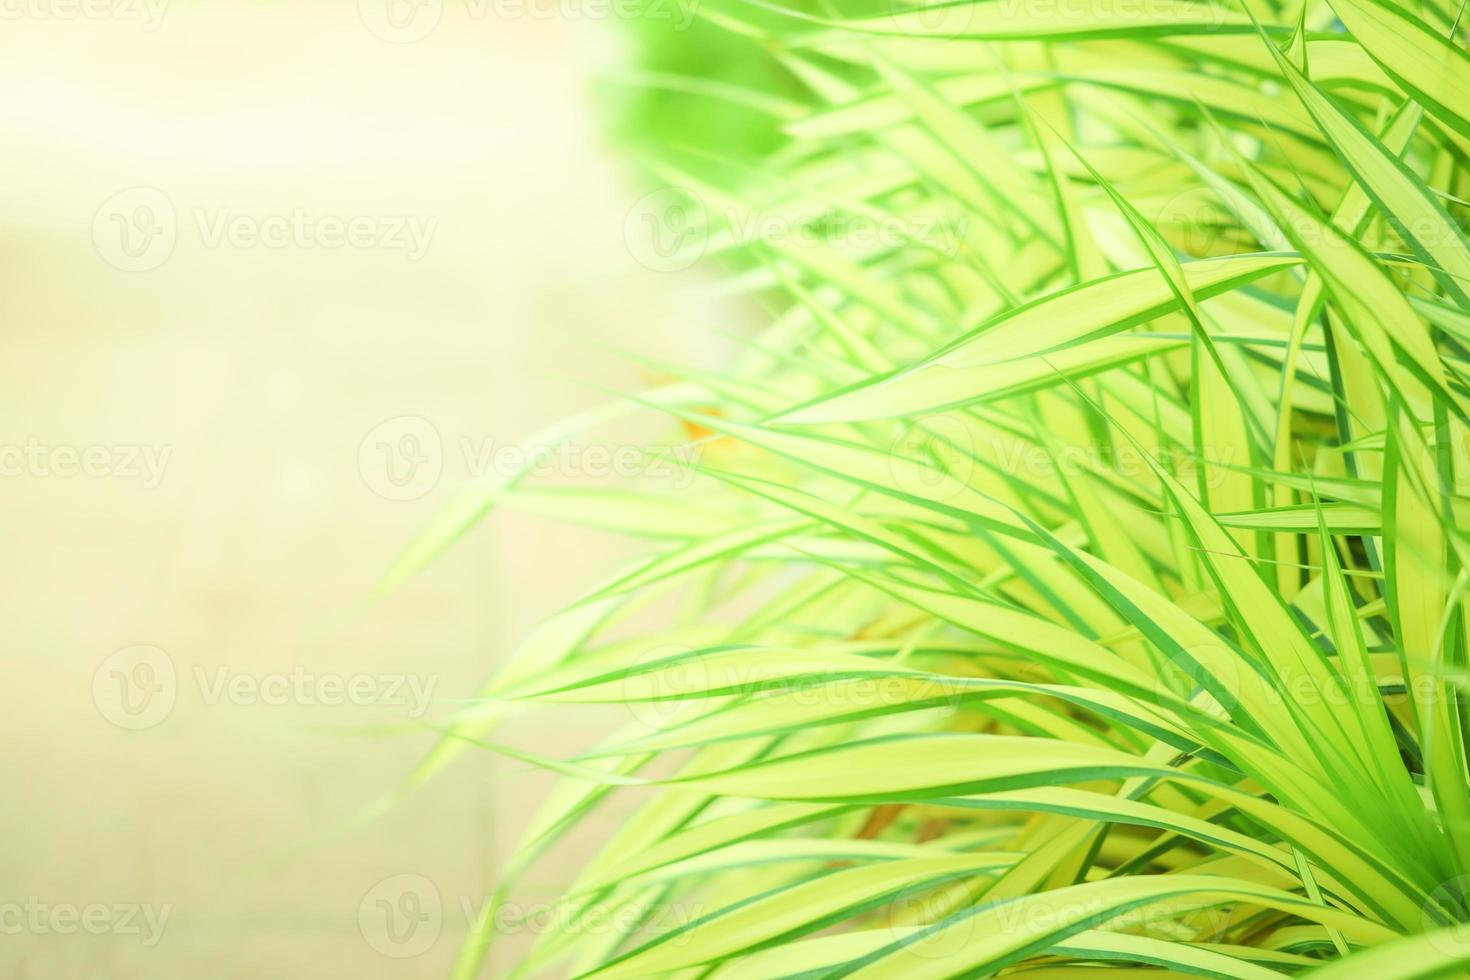 Close-up of green grass with blurred background photo